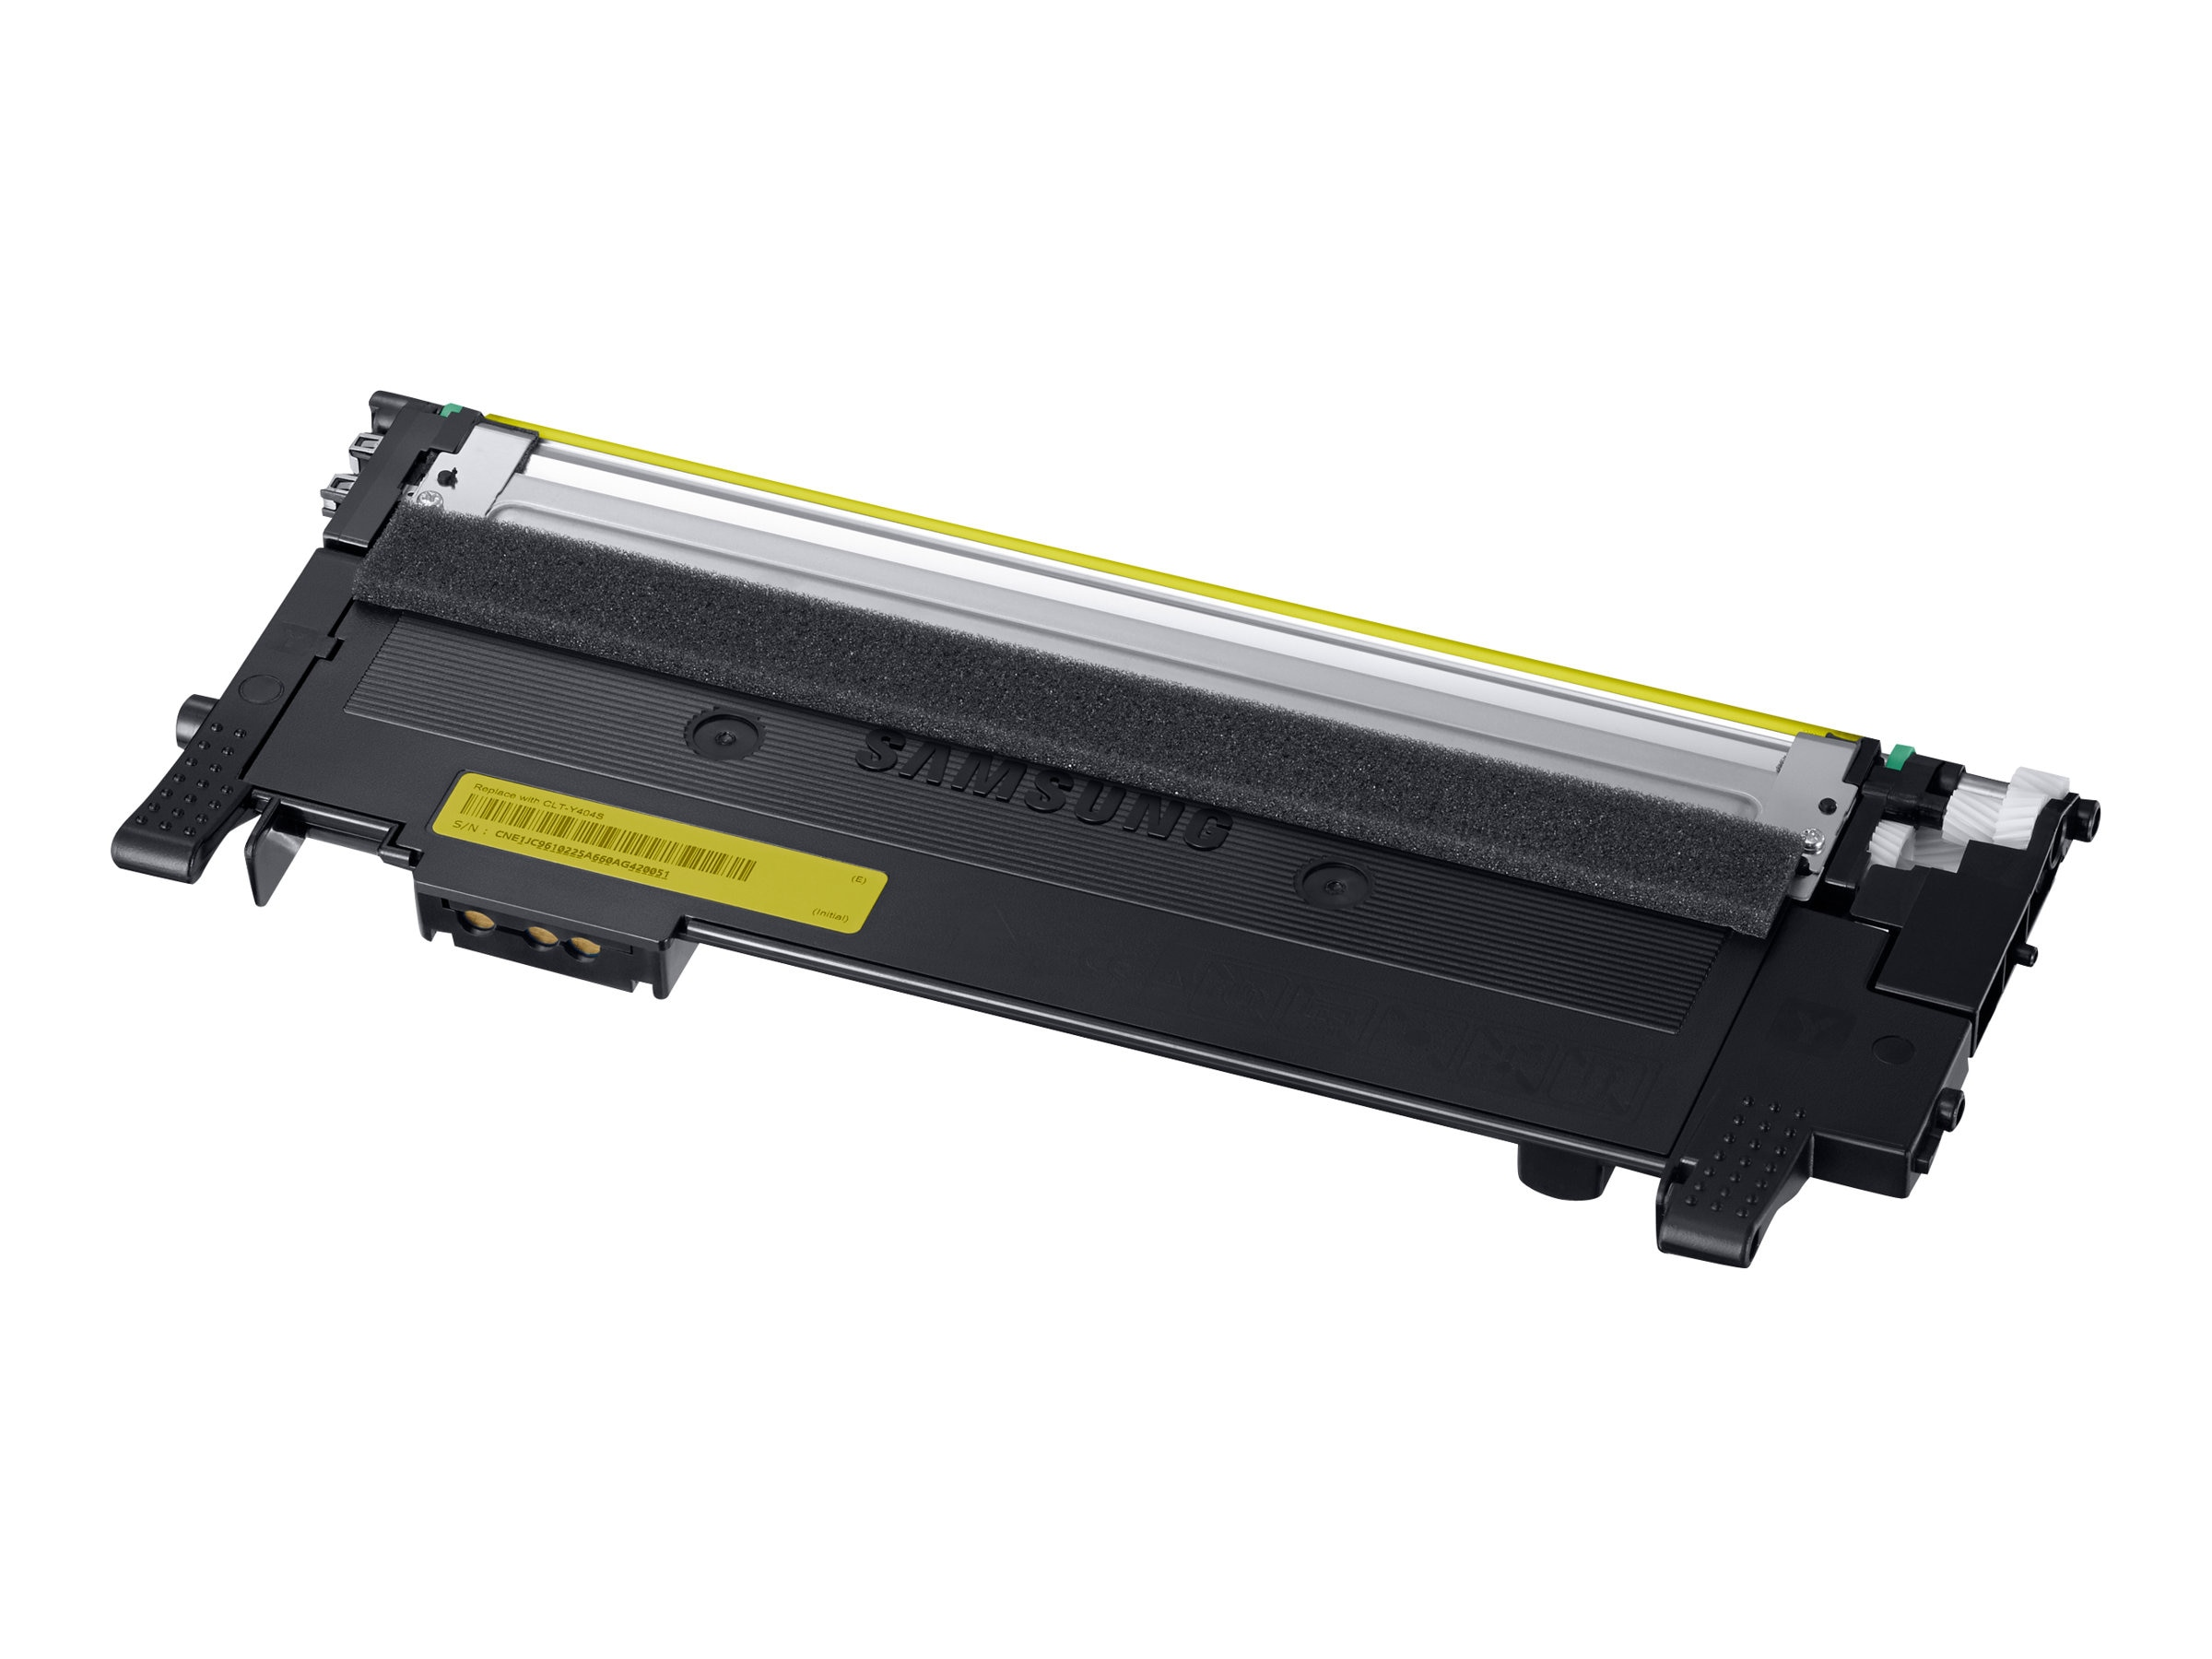 Samsung Yellow Toner Cartridge for XPress C430W, C480W & C480FW, CLT-Y404S/XAA